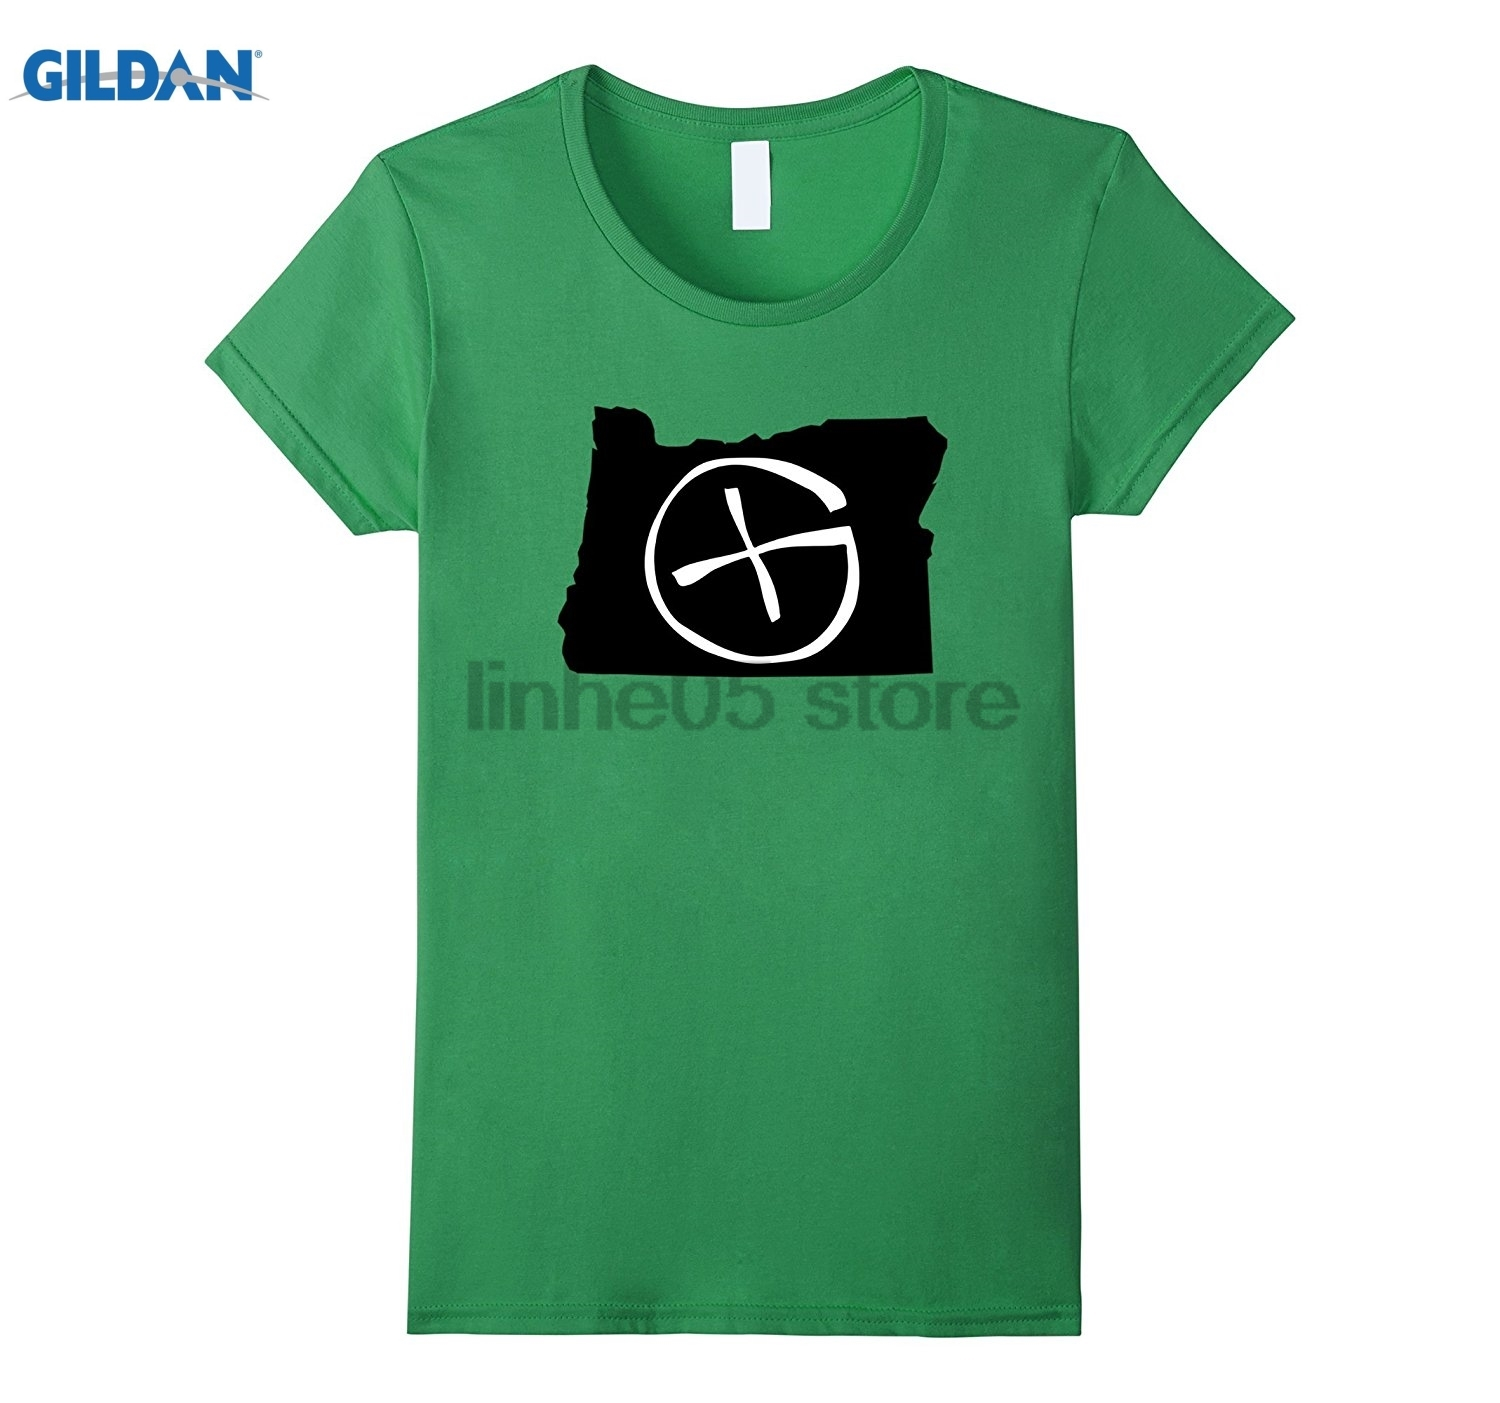 GILDAN Oregon Geocaching Symbol Shirt Geocache Cache Hunter Womens T-shirt